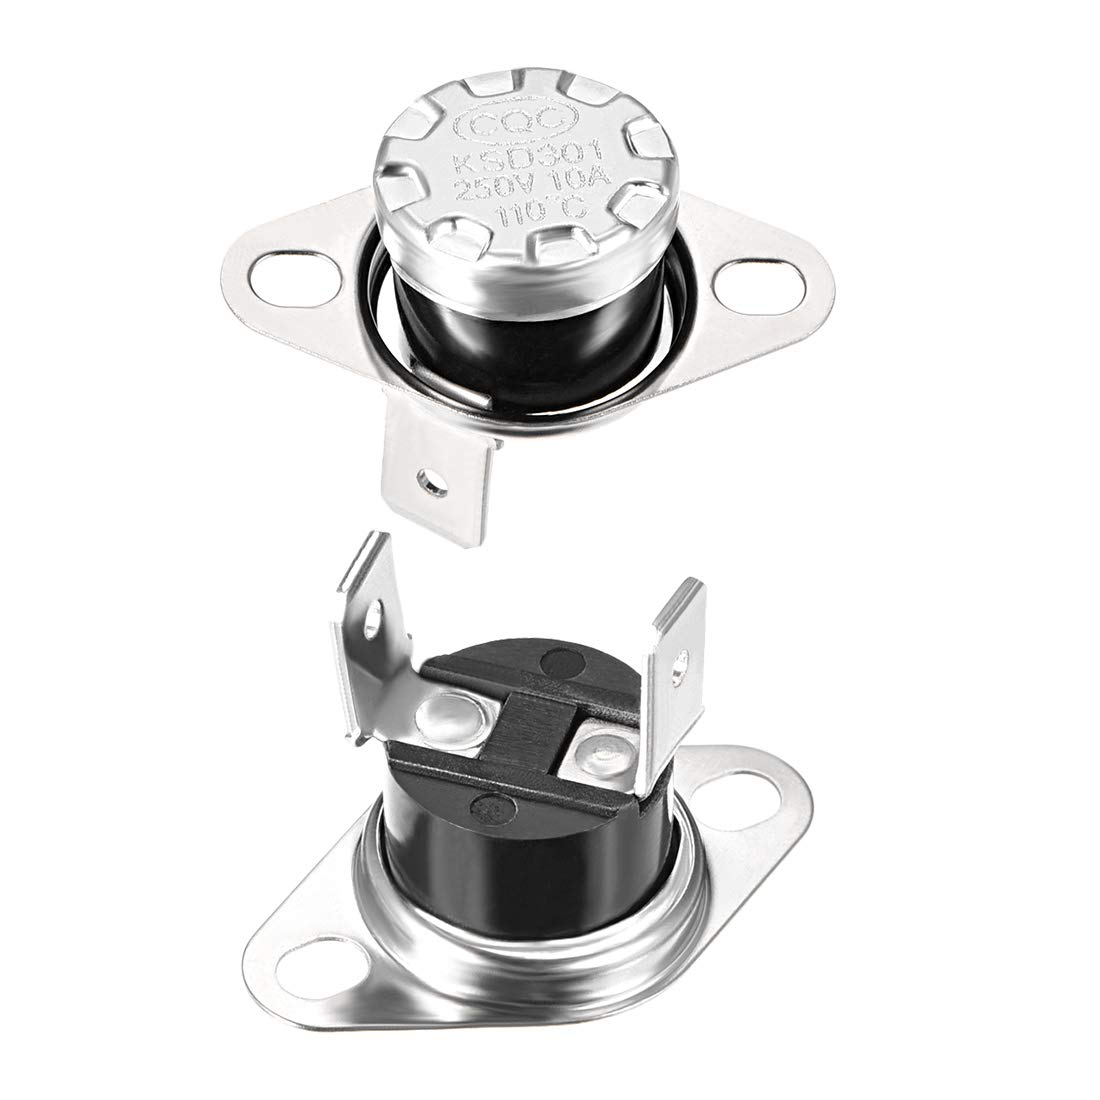 Adjust Snap Disc Limit Control Switch Microwave Thermostat Thermal Switch 140/°C 10A Normally Closed N.C 2pcs uxcell KSD301 Thermostat